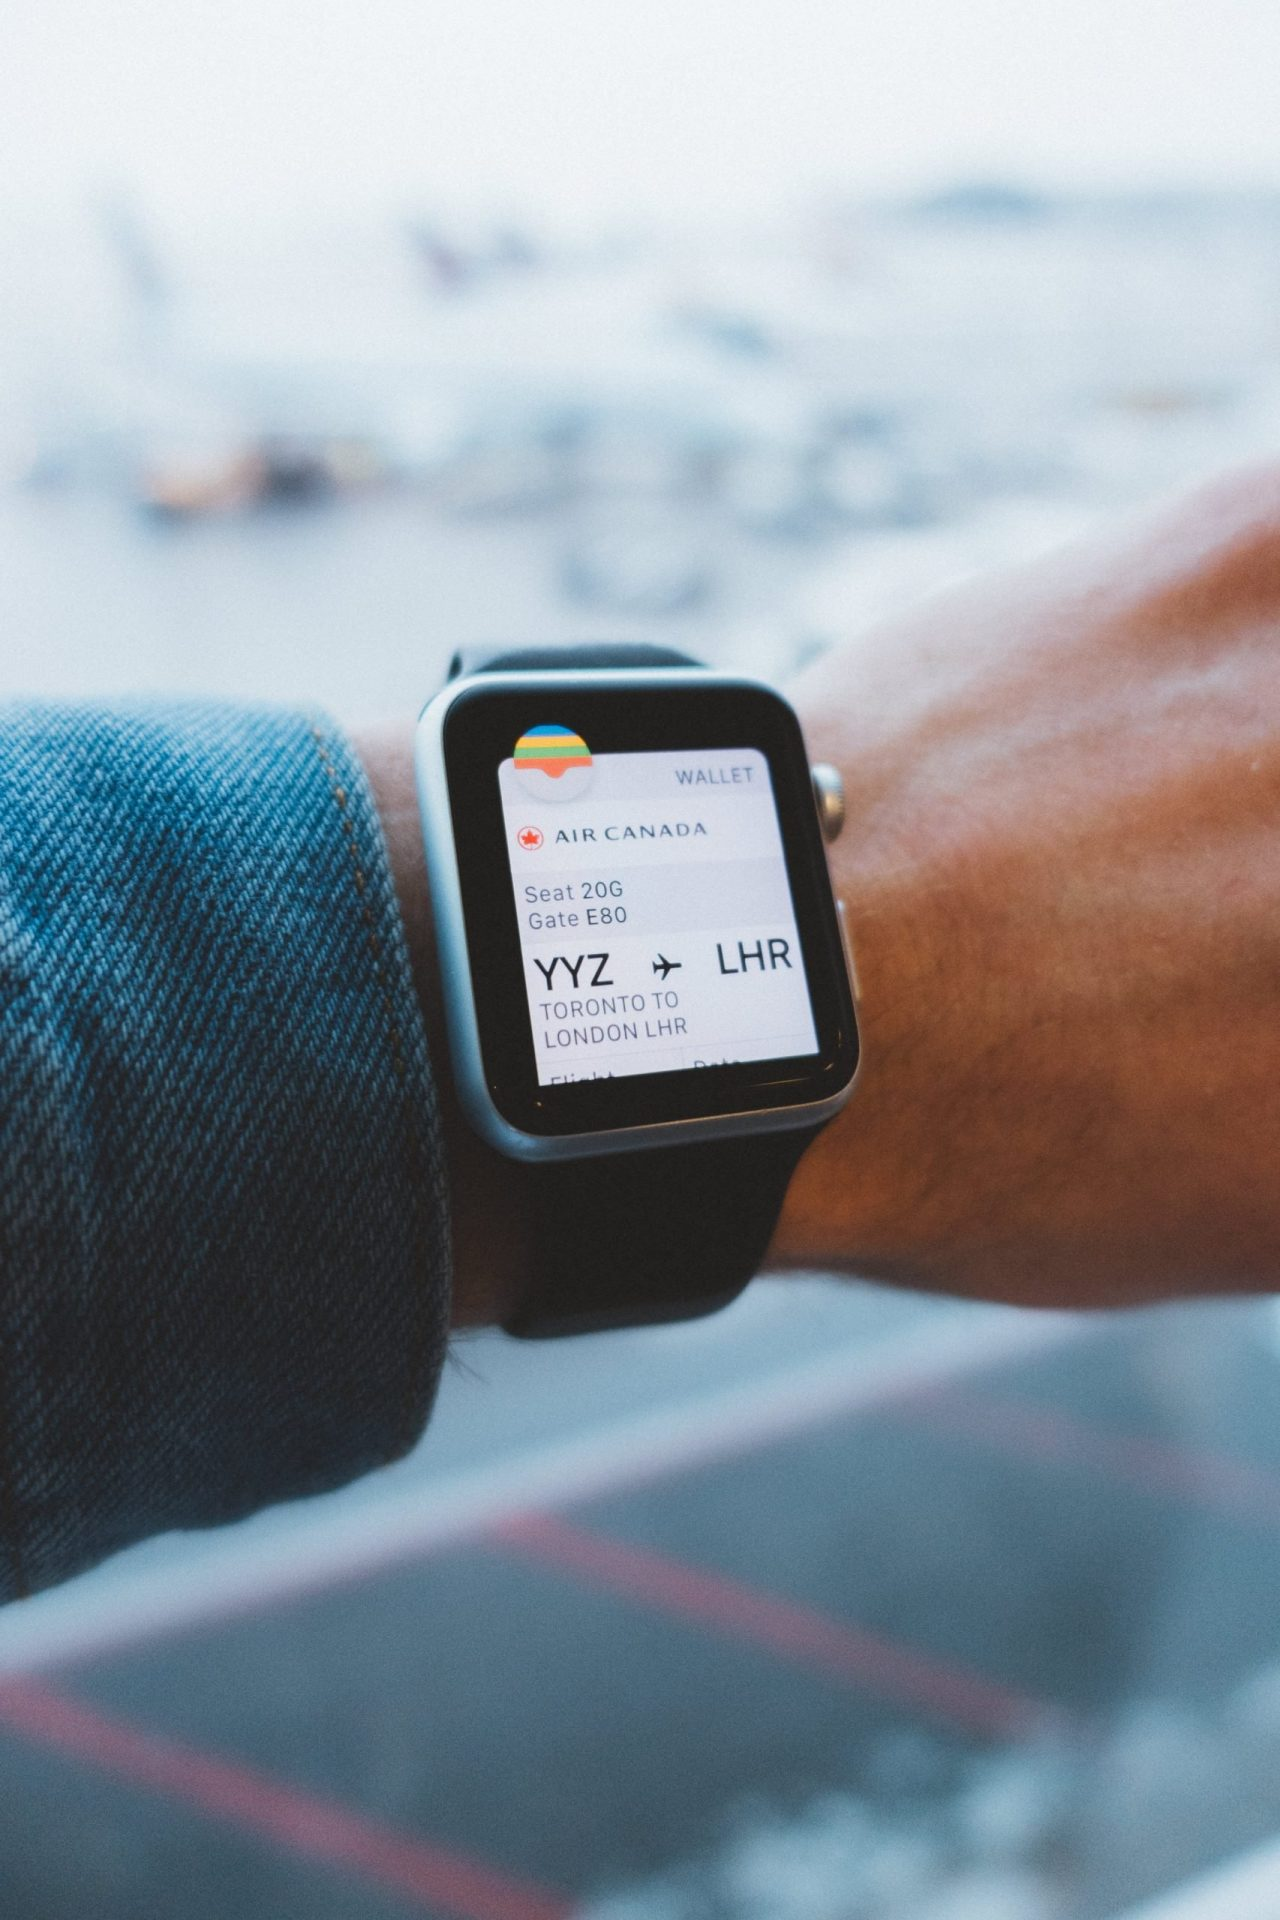 Apple Watch showing flight time